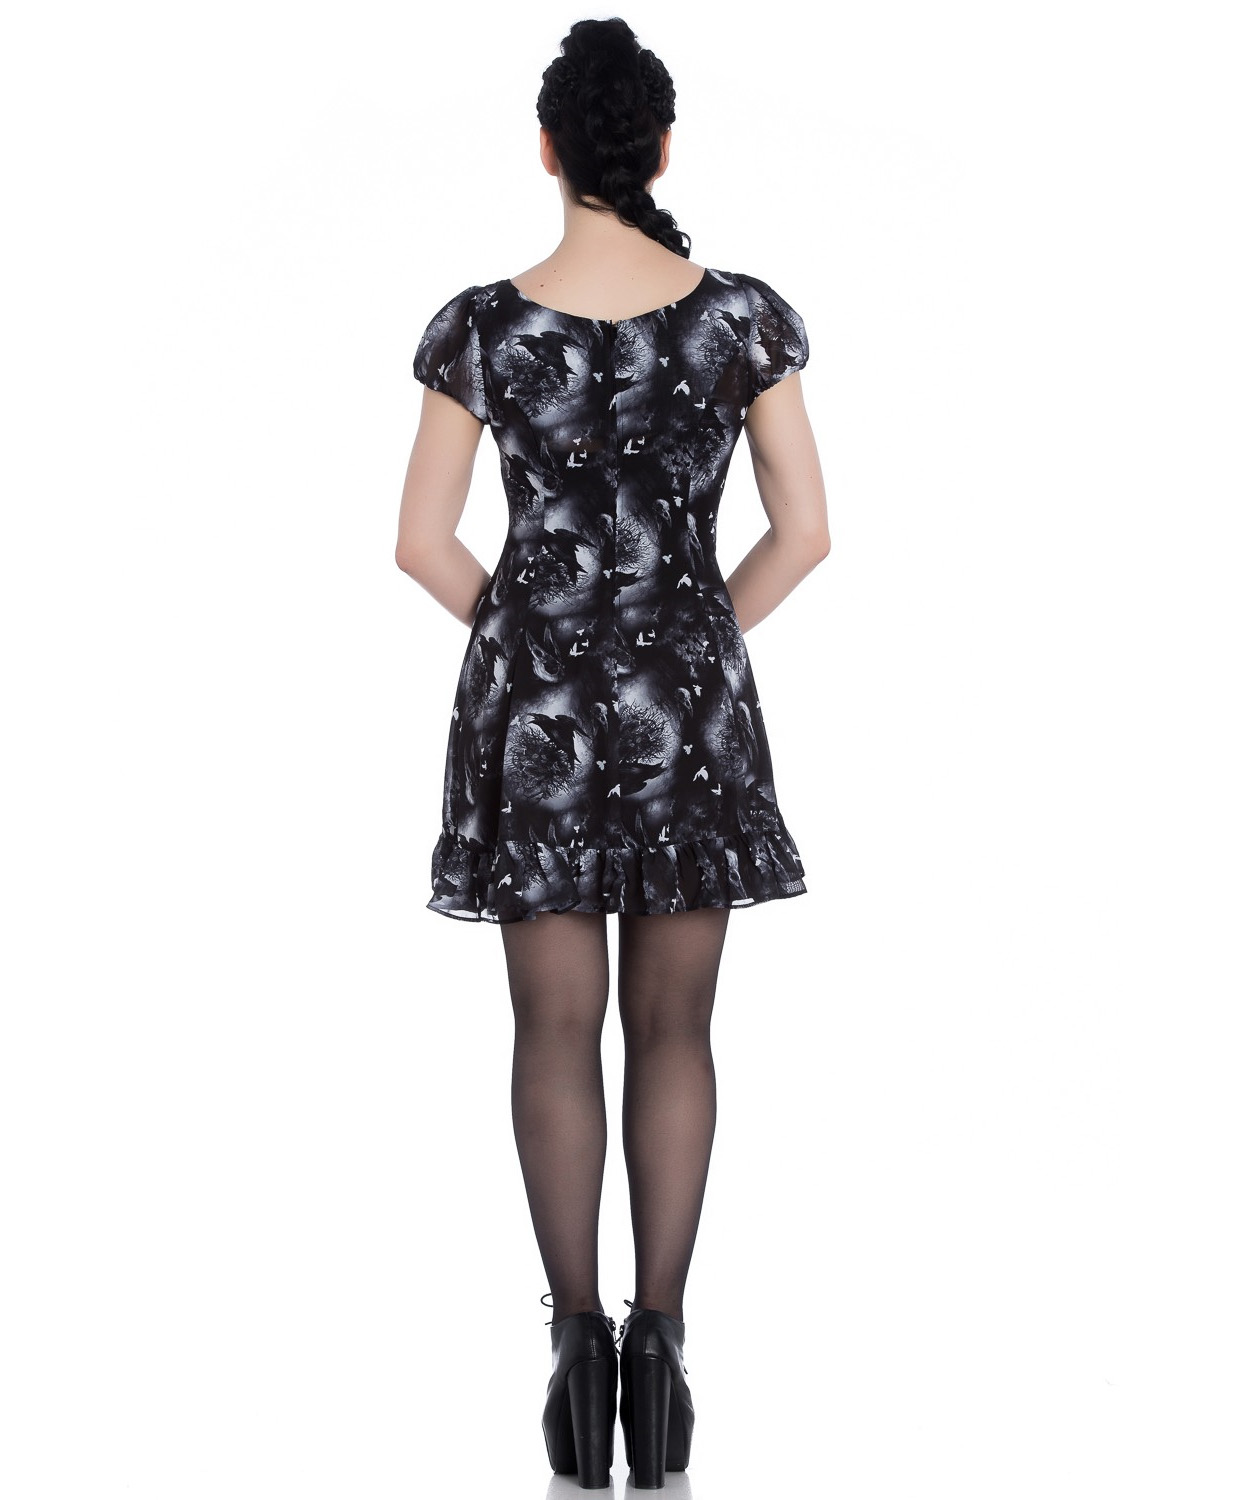 Hell-Bunny-Alchemy-Gothic-Black-Skater-Mini-Dress-ASH-Crows-Skulls-All-Sizes thumbnail 21